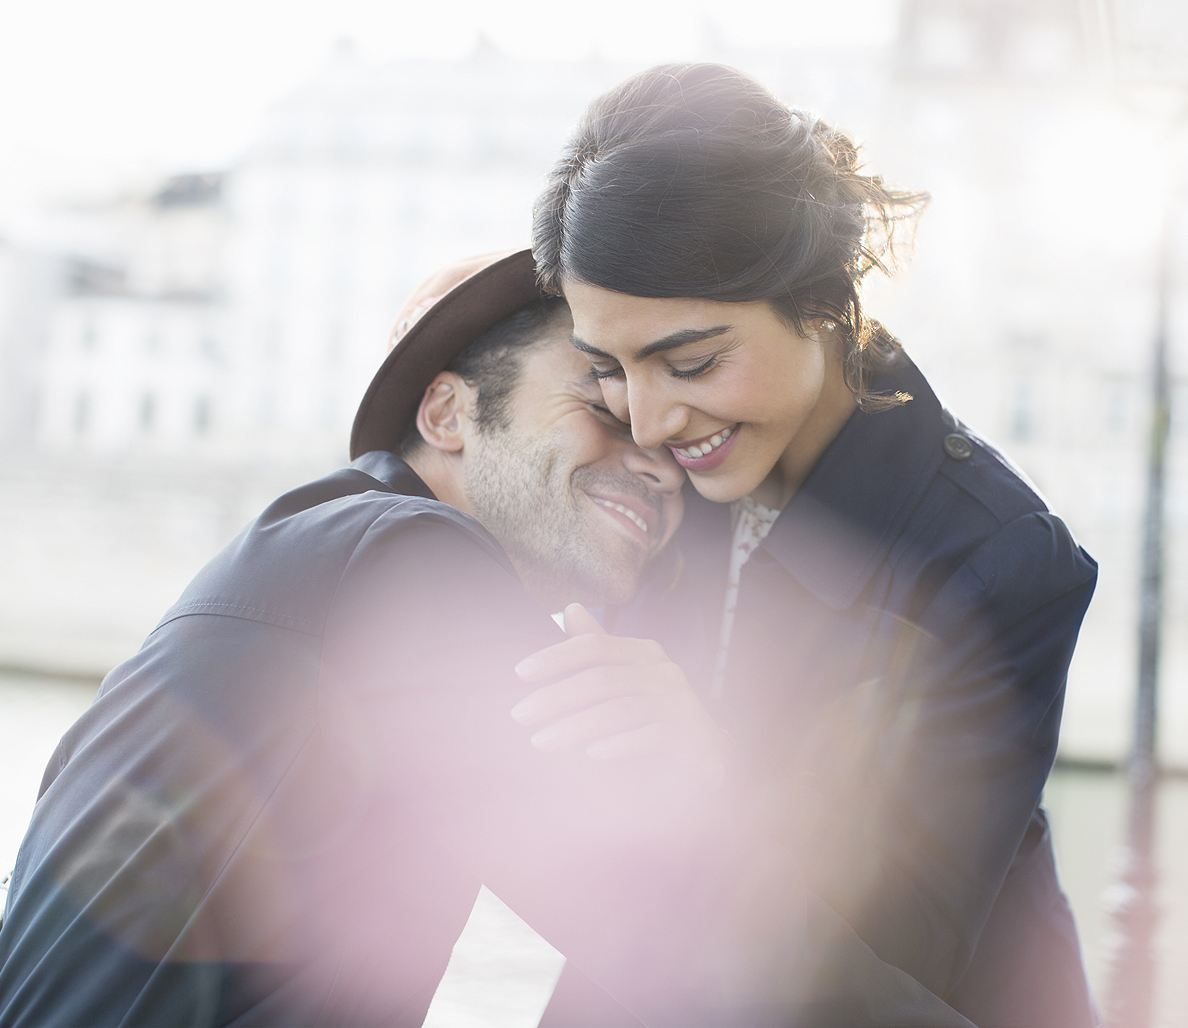 18 Signs a Man Wants to Be With You (And He Wants a Serious